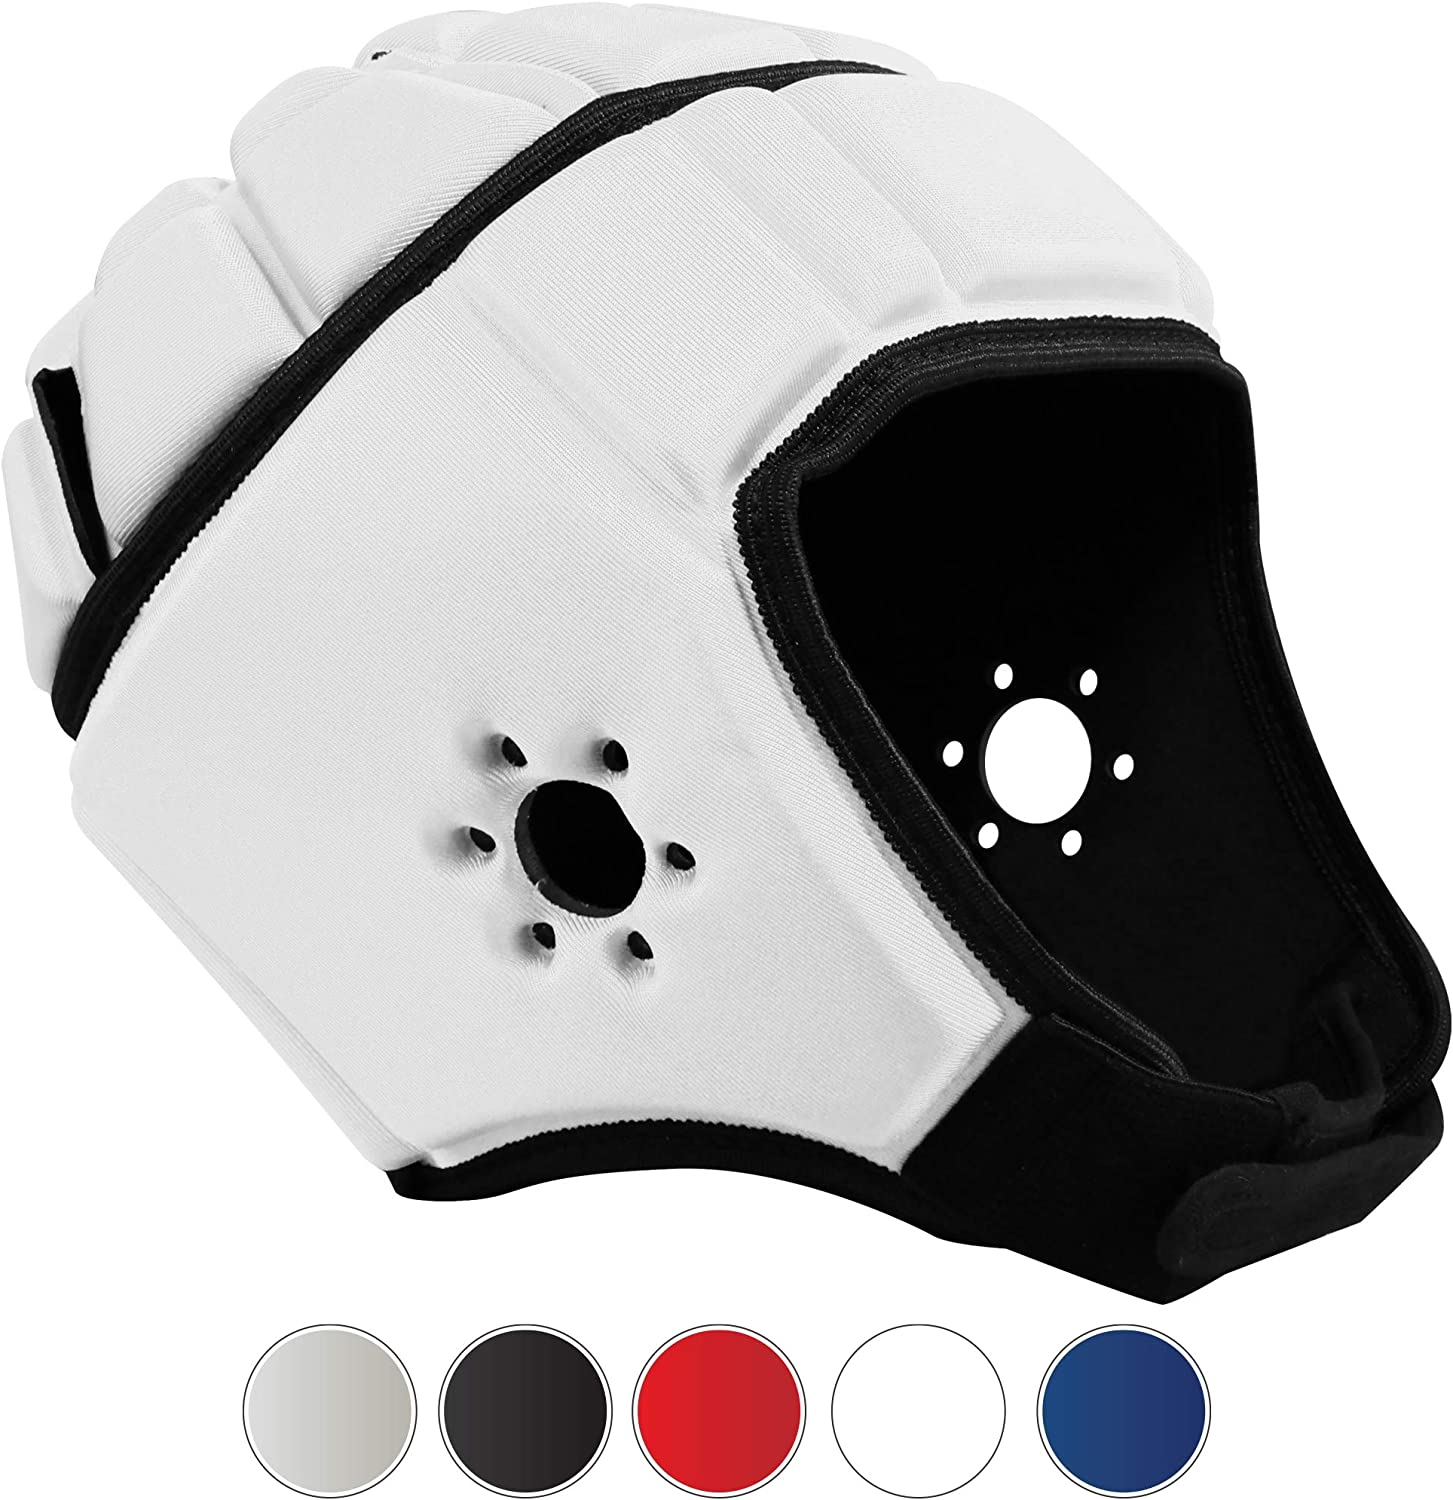 EliteTek Soft Padded Headgear - 7v7 Soft Shell - Rugby - Flag Football Helmet - Soccer Goalie & Epilepsy Head Fall Protection - Youth & Adult Sizing